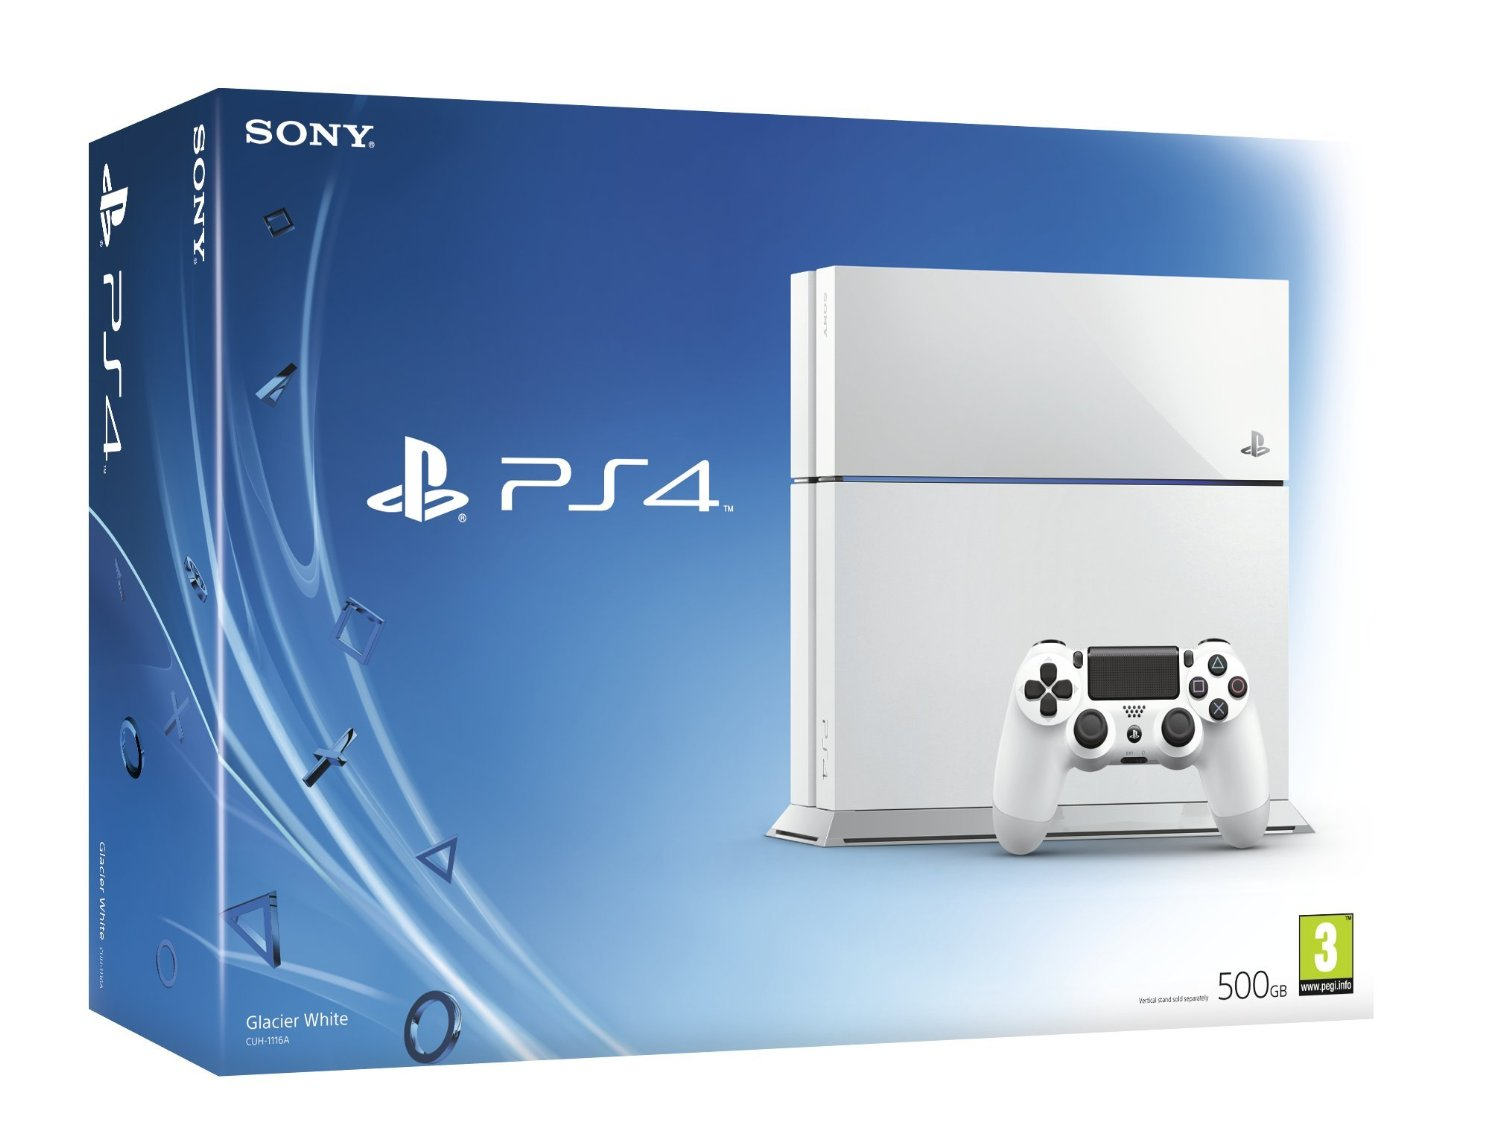 Sony Play Station 4 500GB Asian (REGION 3) White